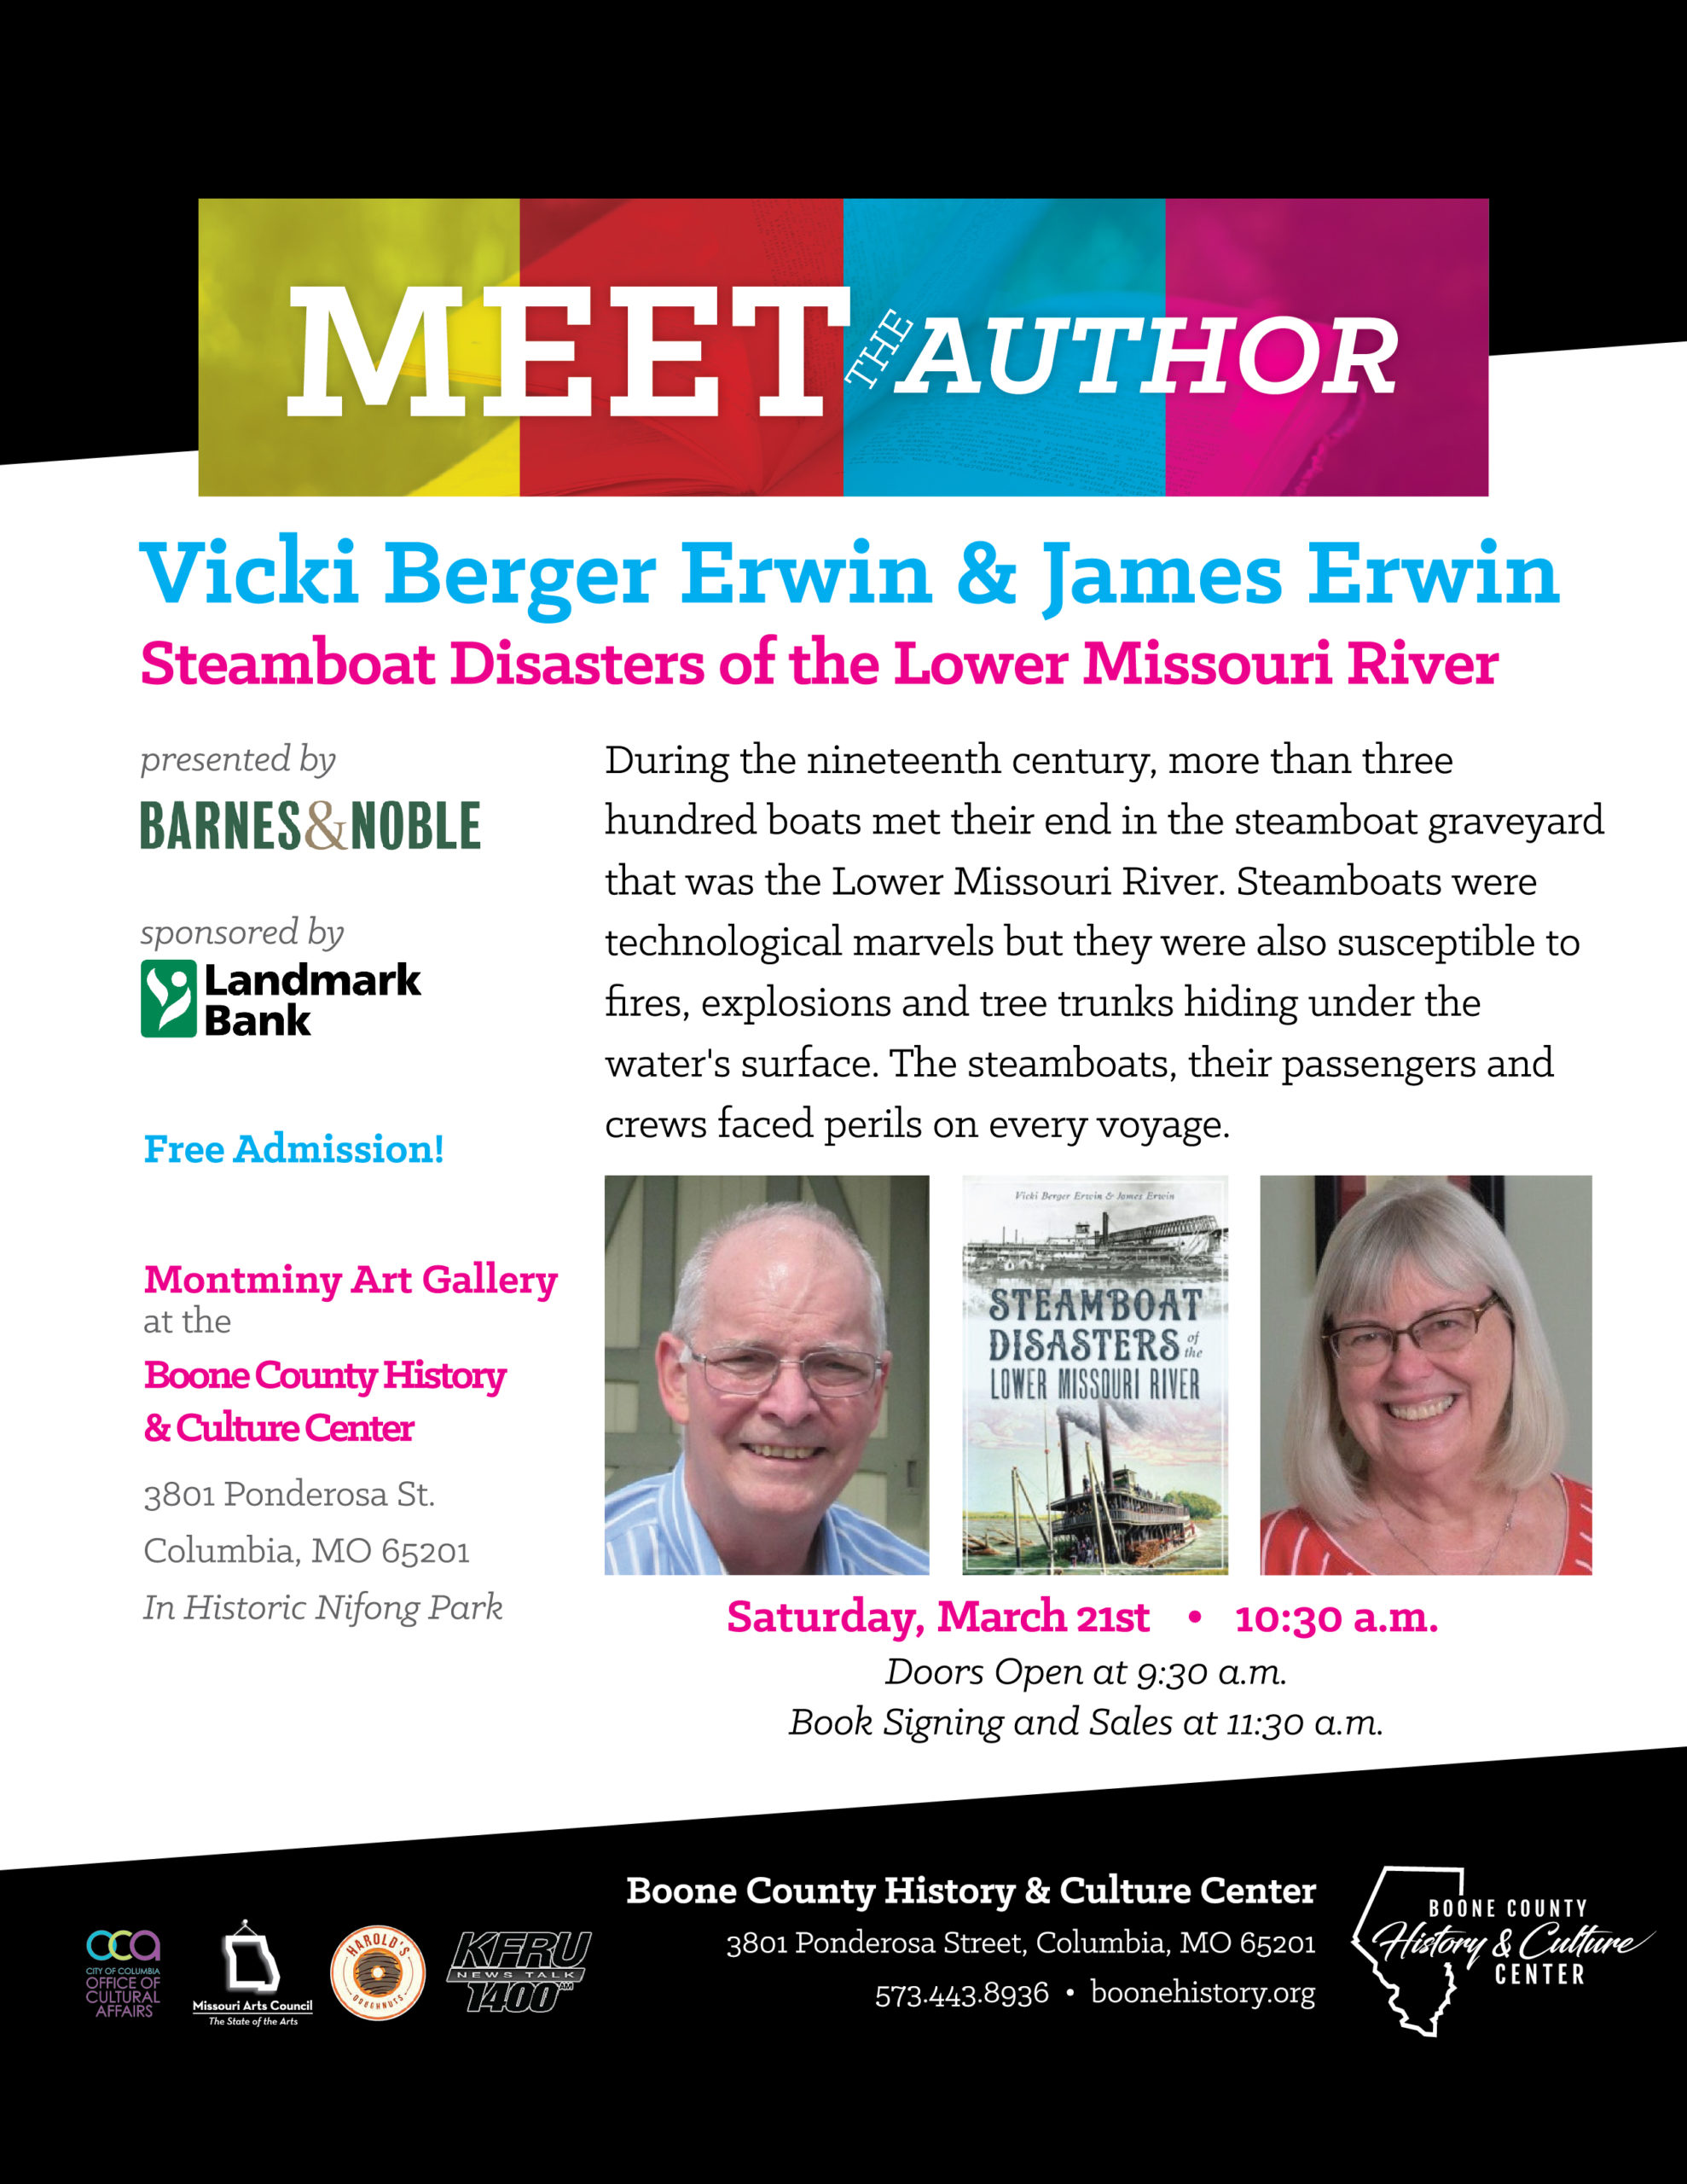 Vicki Berger Erwin & James Erwin – Steamboat Disasters of the Lower Missouri River